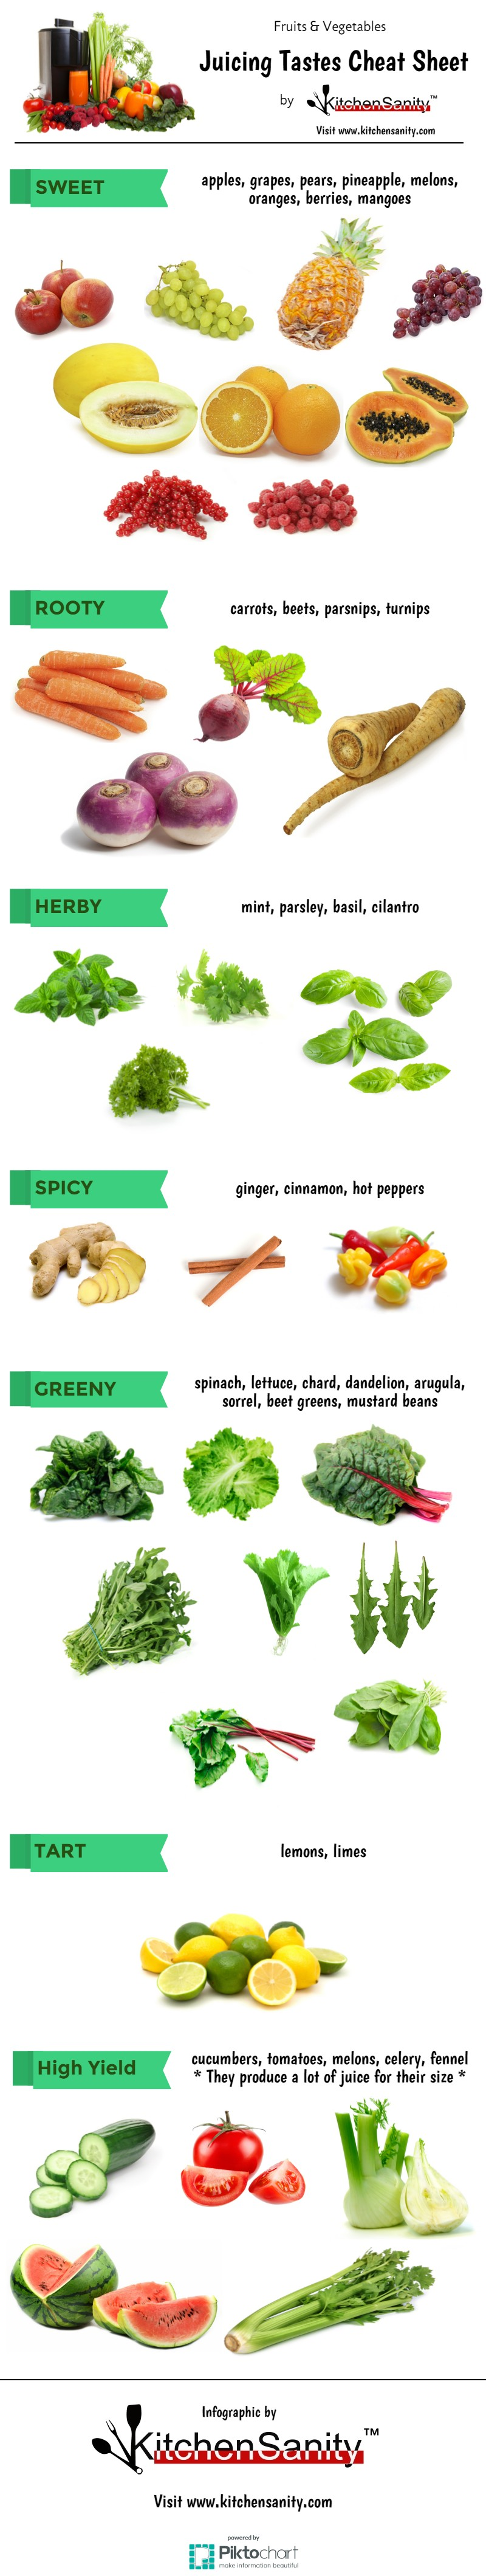 Juicing Flavors & Tastes Cheat Sheet